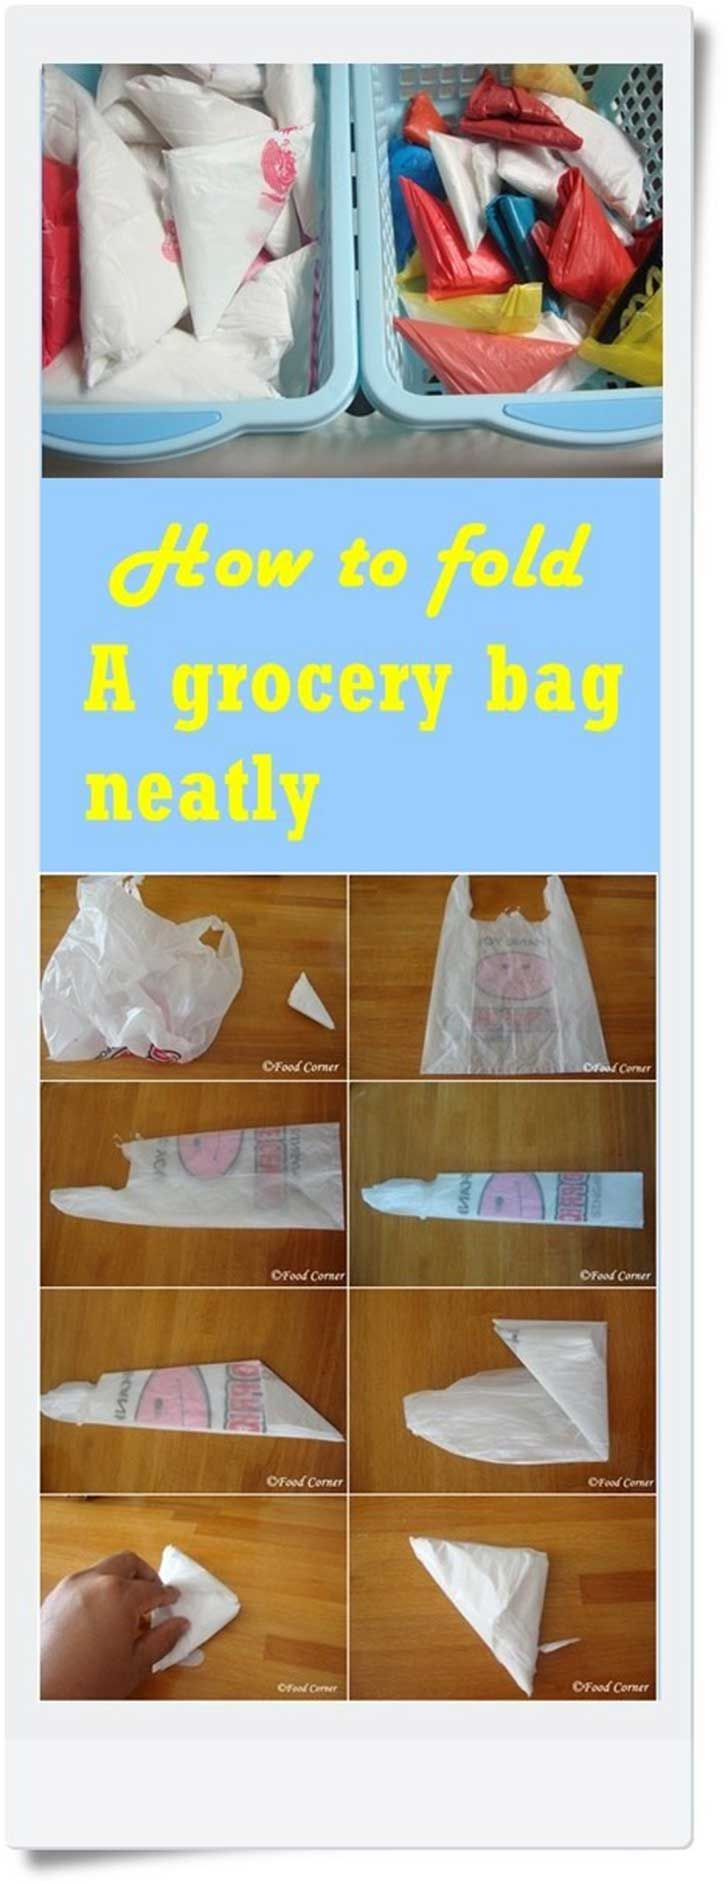 Do it yourself: how to fold a plastic bag neatly